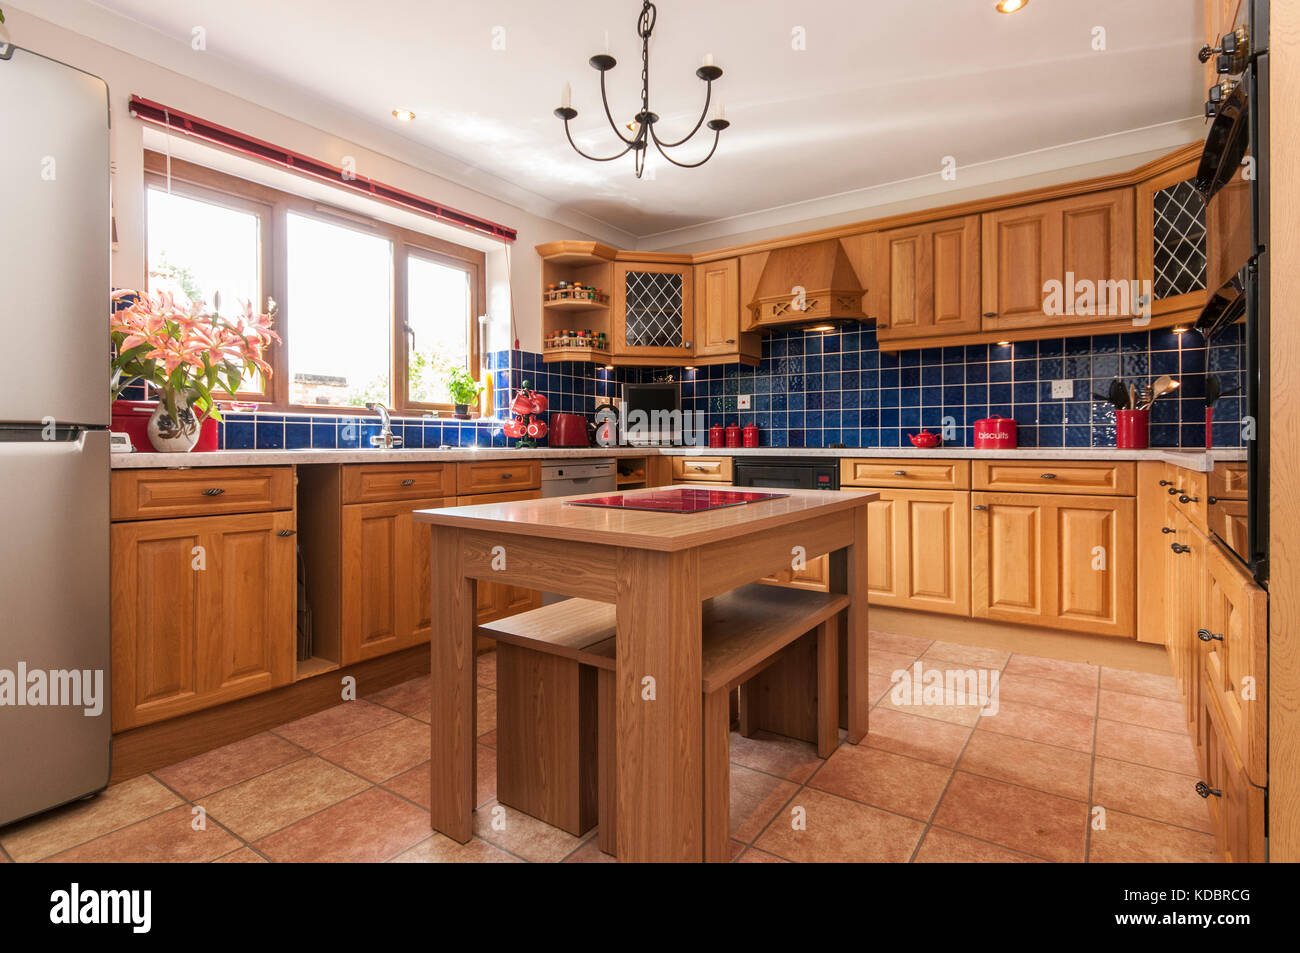 Traditional Farmhouse Kitchen With Blue Tiles And Pine Fitted Stock Photo Alamy